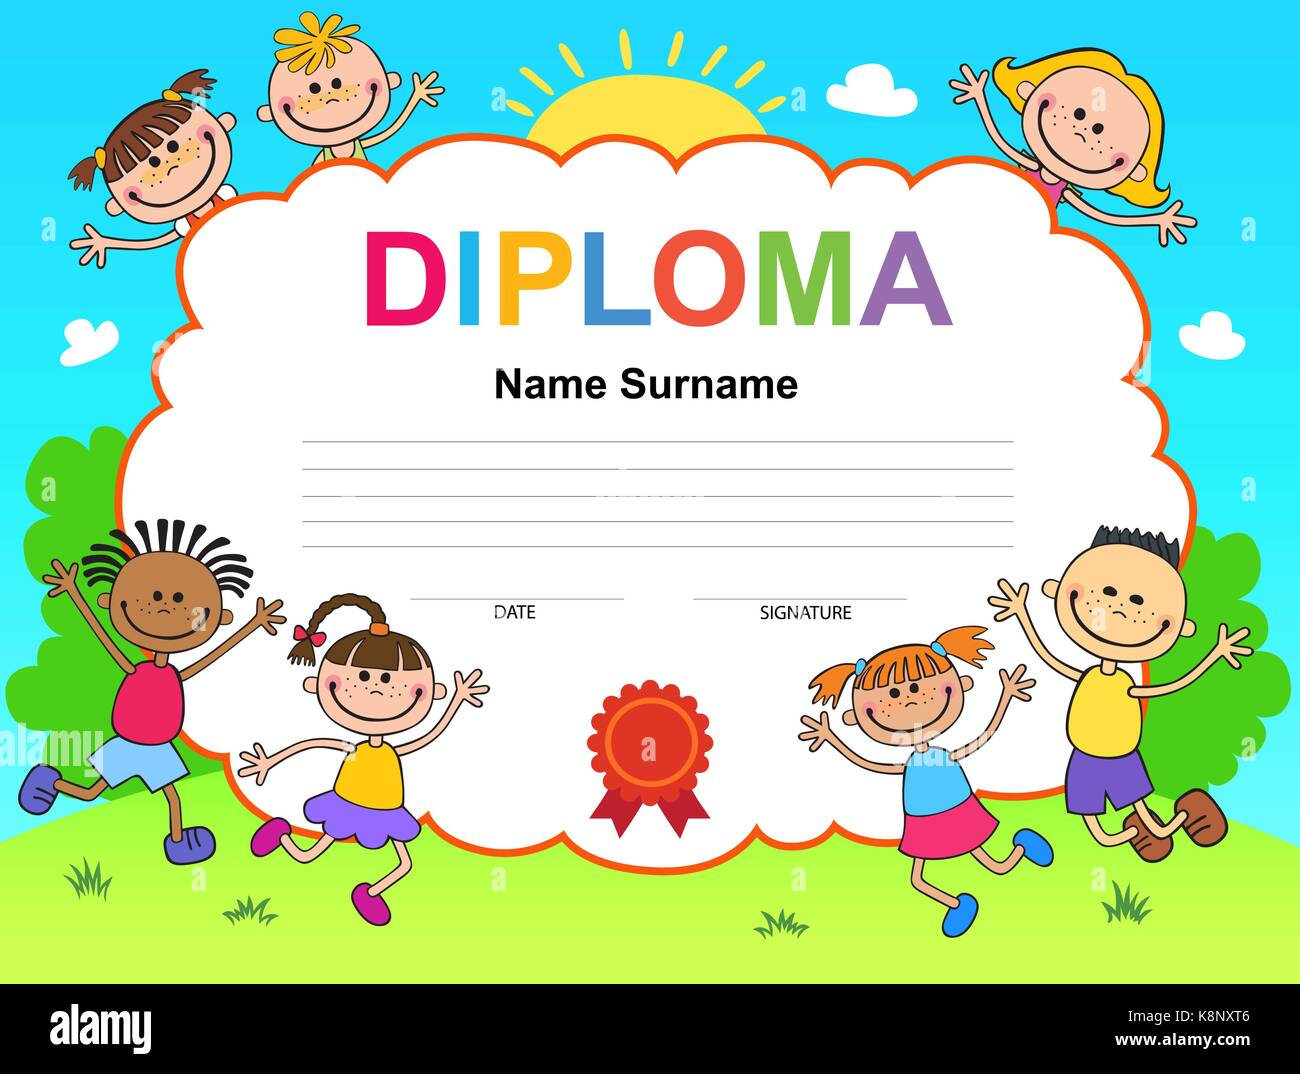 Kids diploma certificate background design template stock vector kids diploma certificate background design template xflitez Images